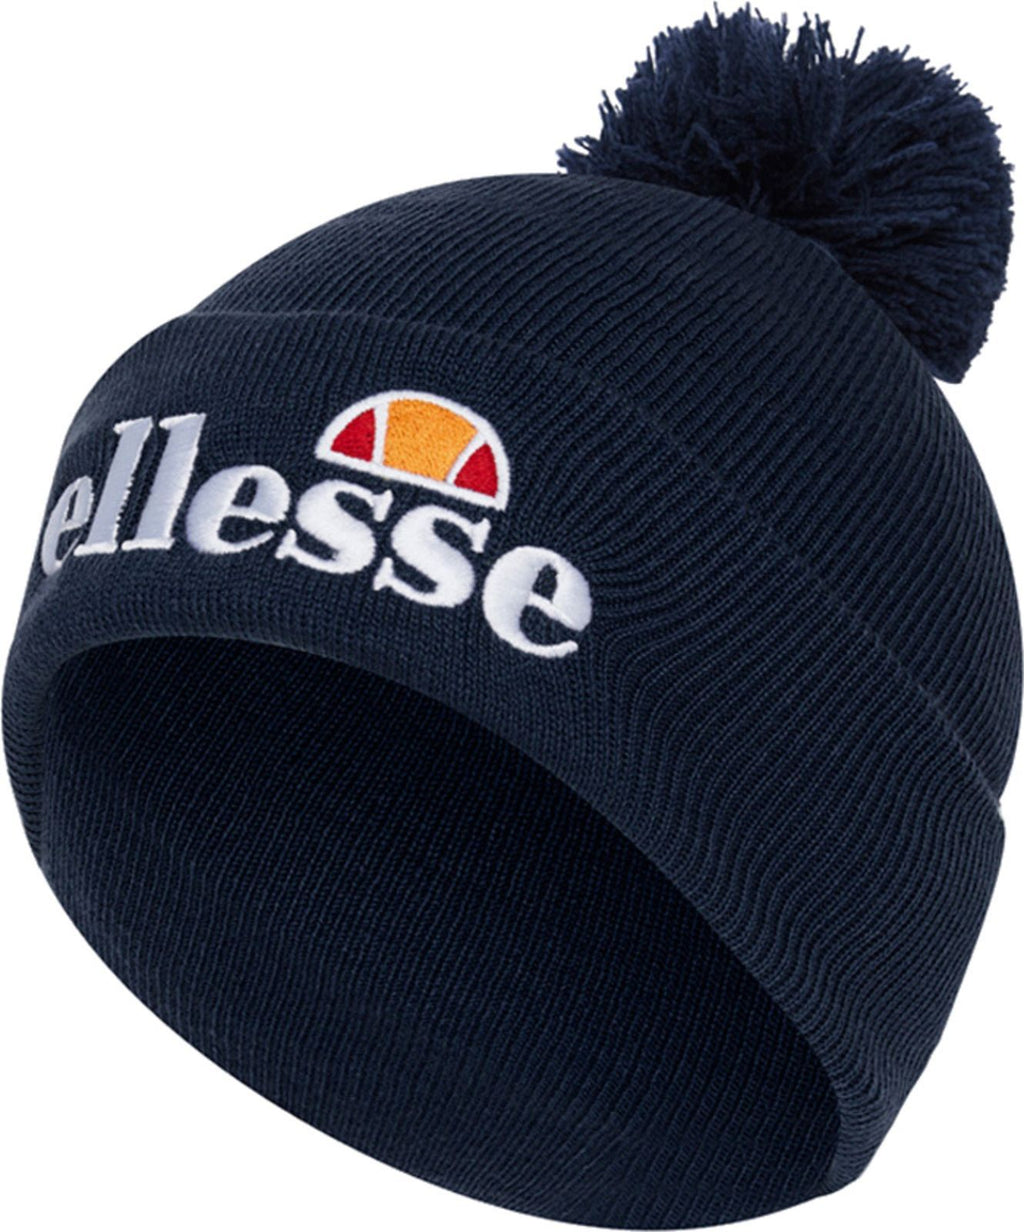 Ellesse Velly Bobble Beanie Hat Navy